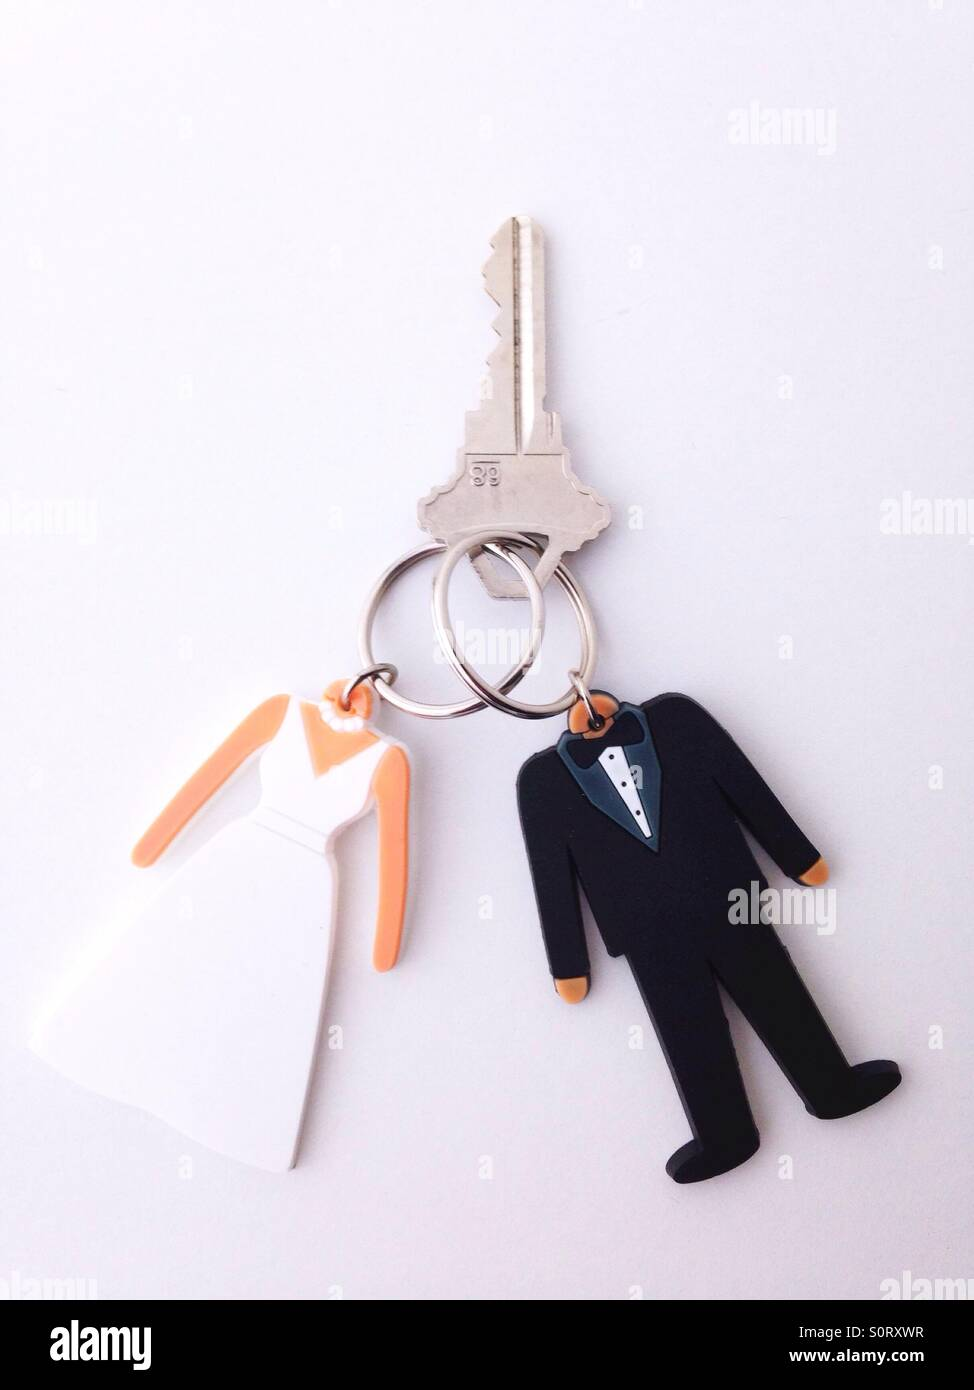 Two key rings in the shape of a bride and groom joined together with one key. - Stock Image